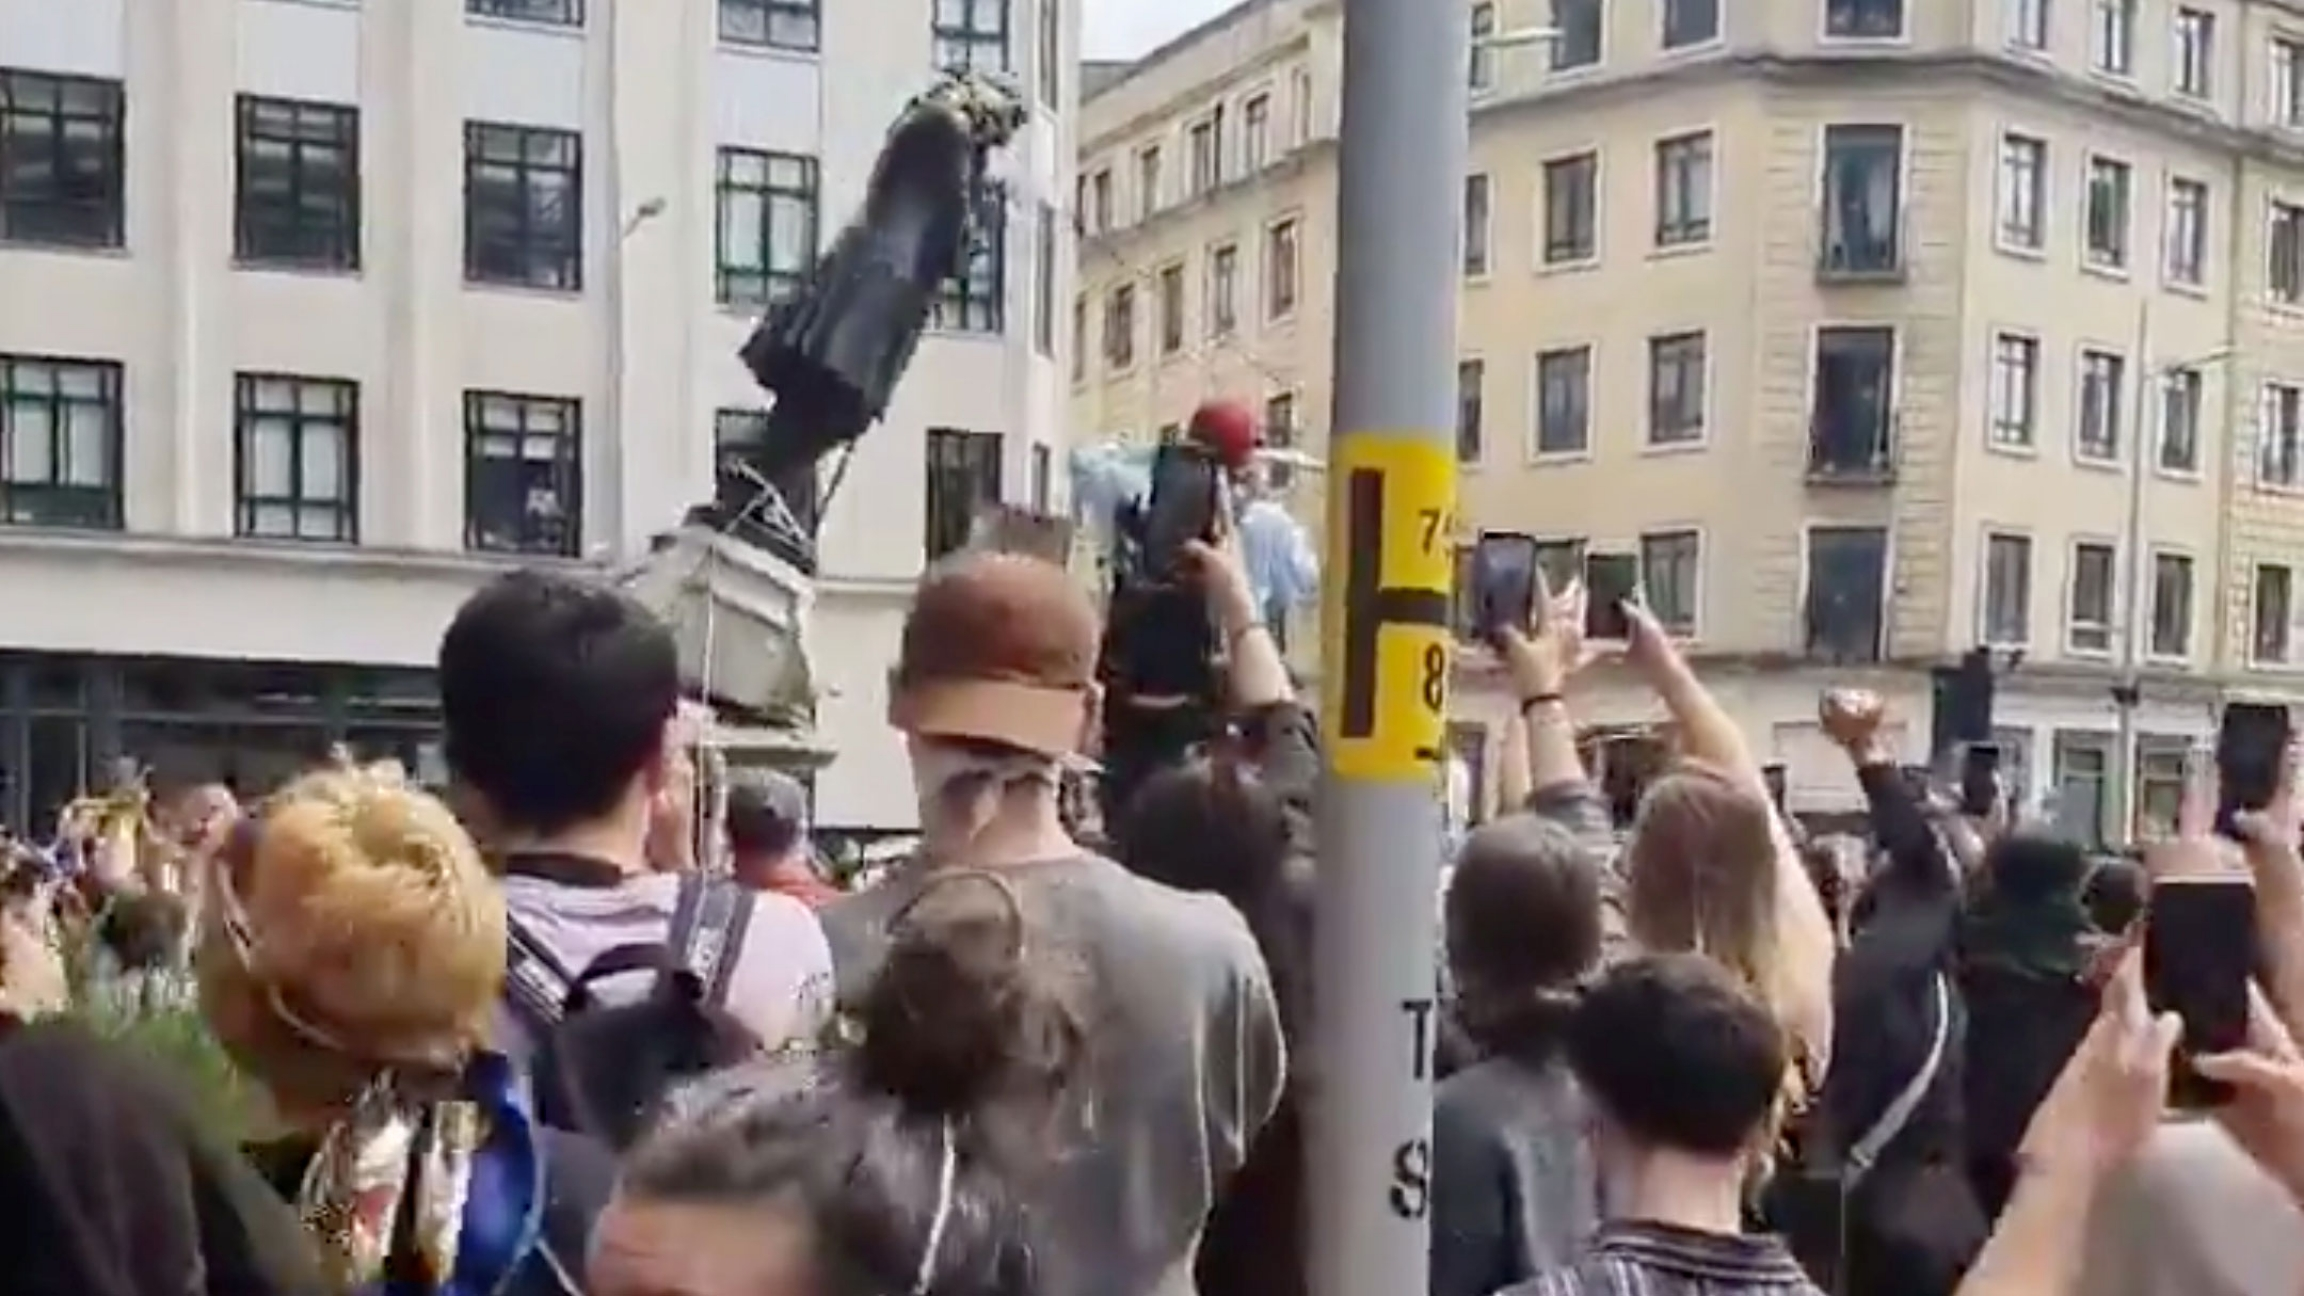 A large group of protesters are shown pulling down the metal statue of Edward Colston.